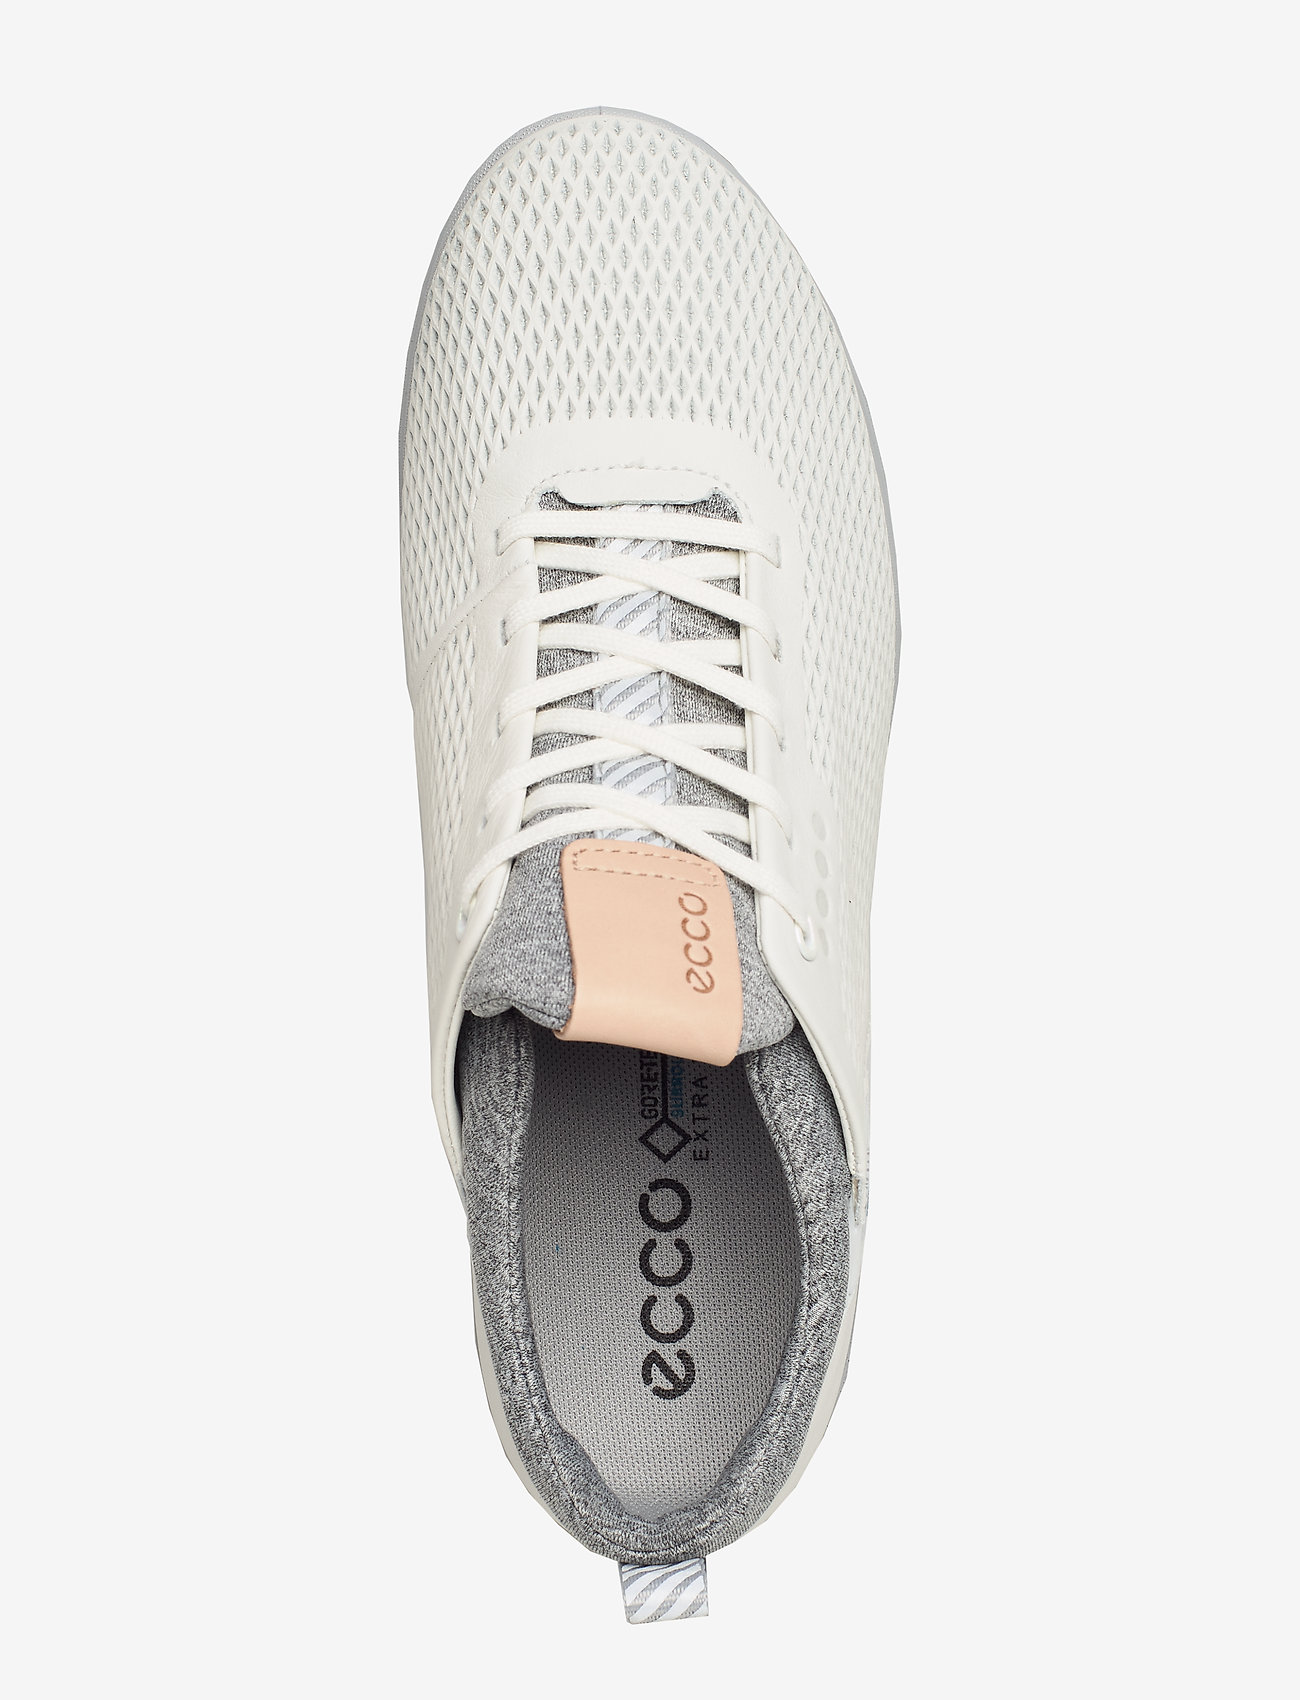 W Golf Cool Pro (White) - ECCO